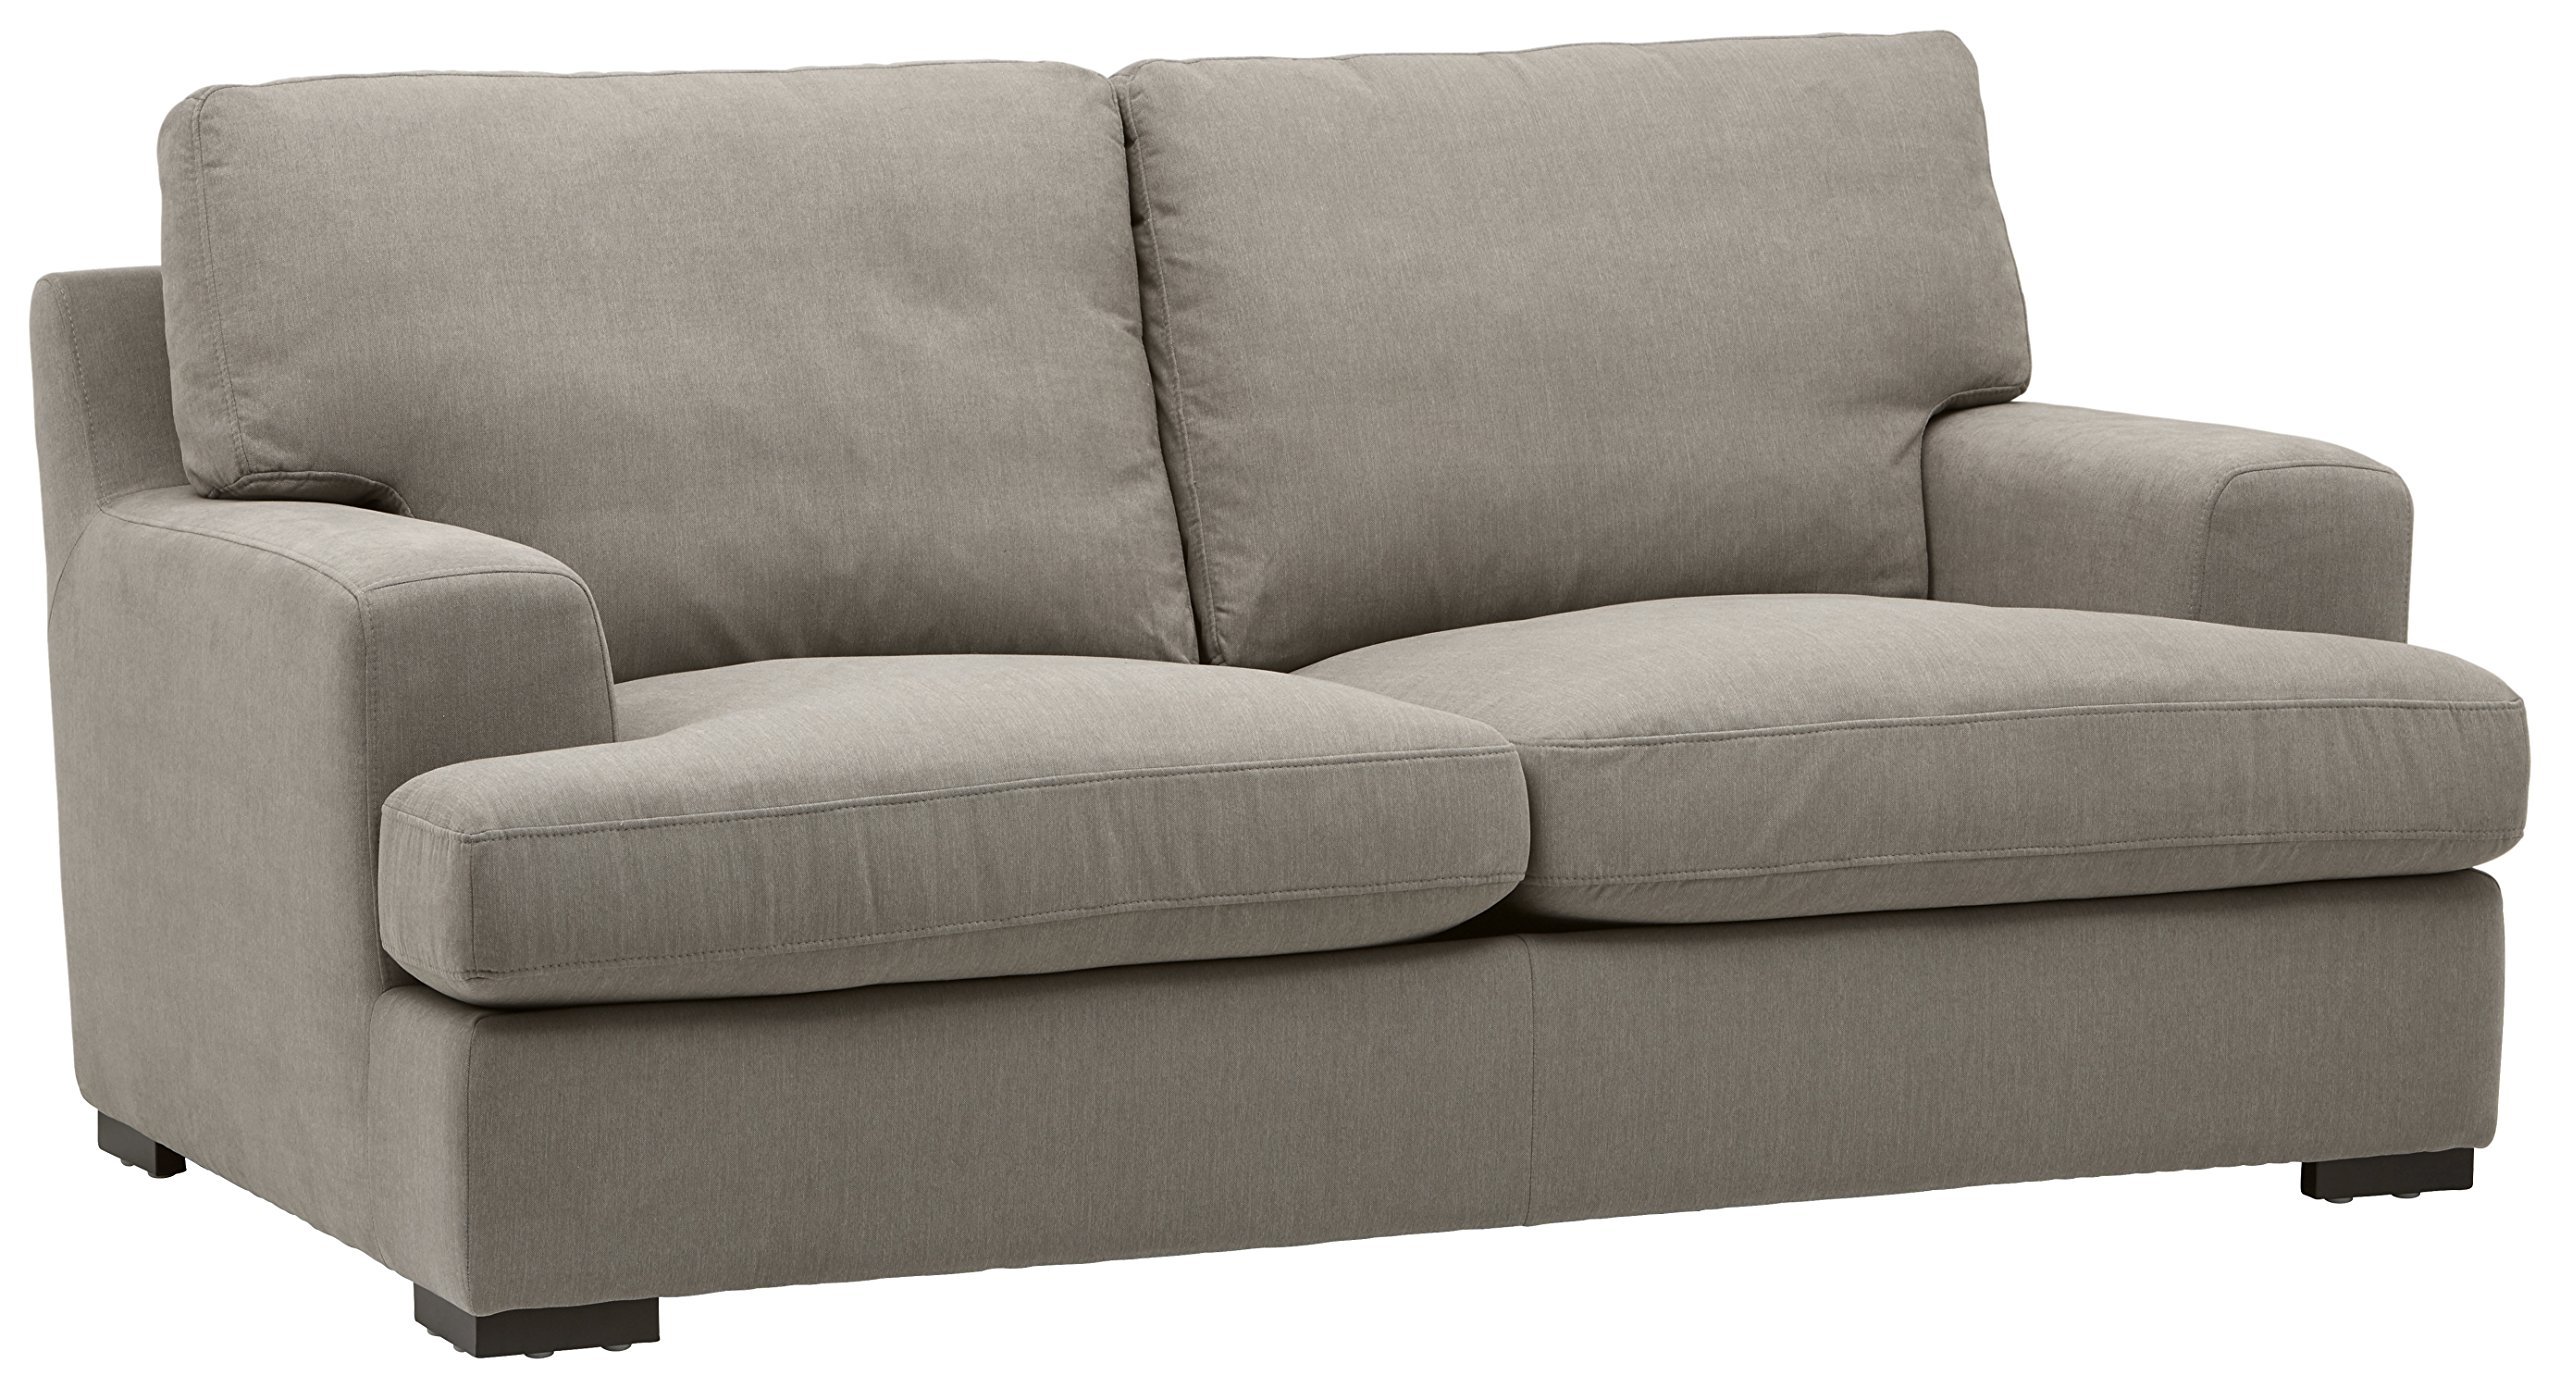 overstuffed sofa amazon com rh amazon com Overstuffed Chairs for Two Overstuffed Chairs for Two